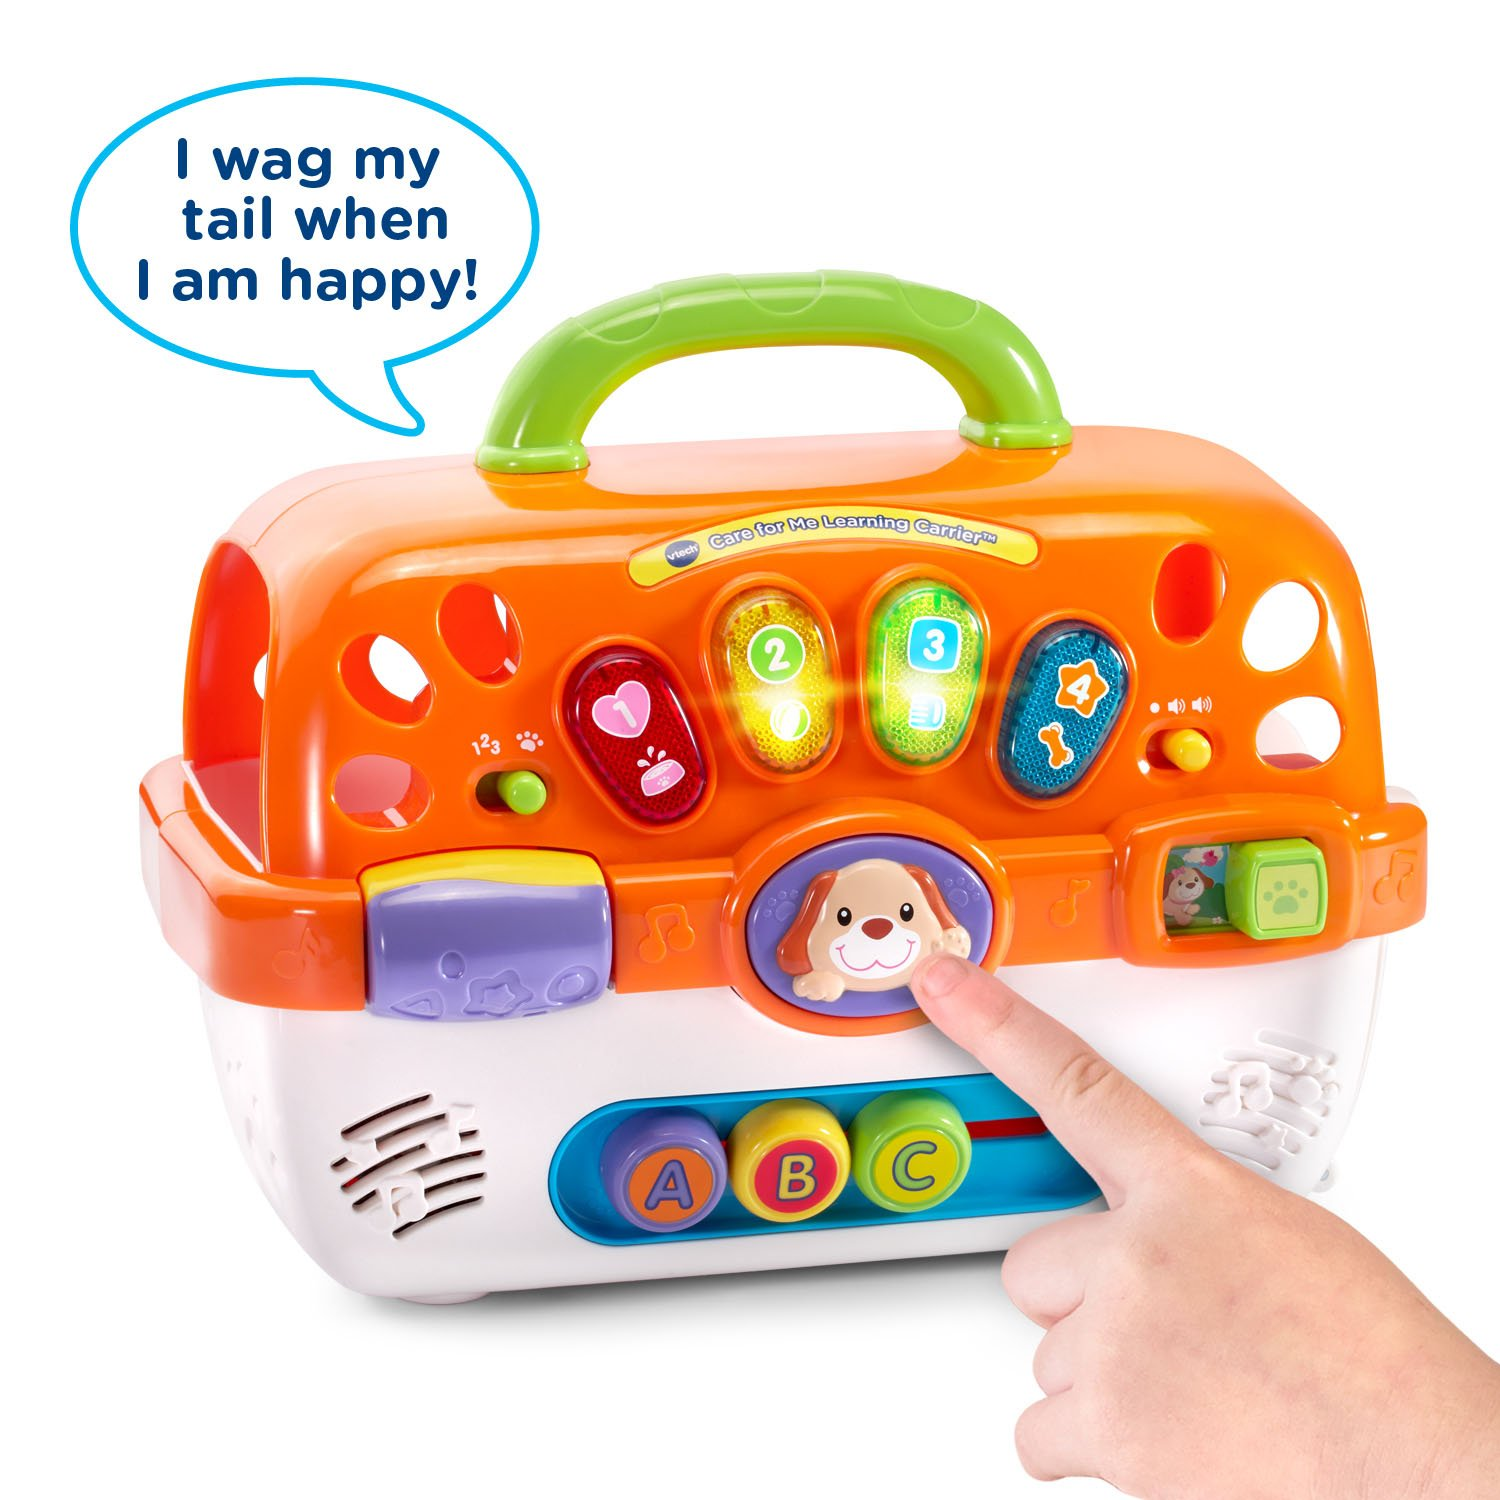 VTech Care for Me Learning Carrier Toy, Orange by VTech (Image #2)